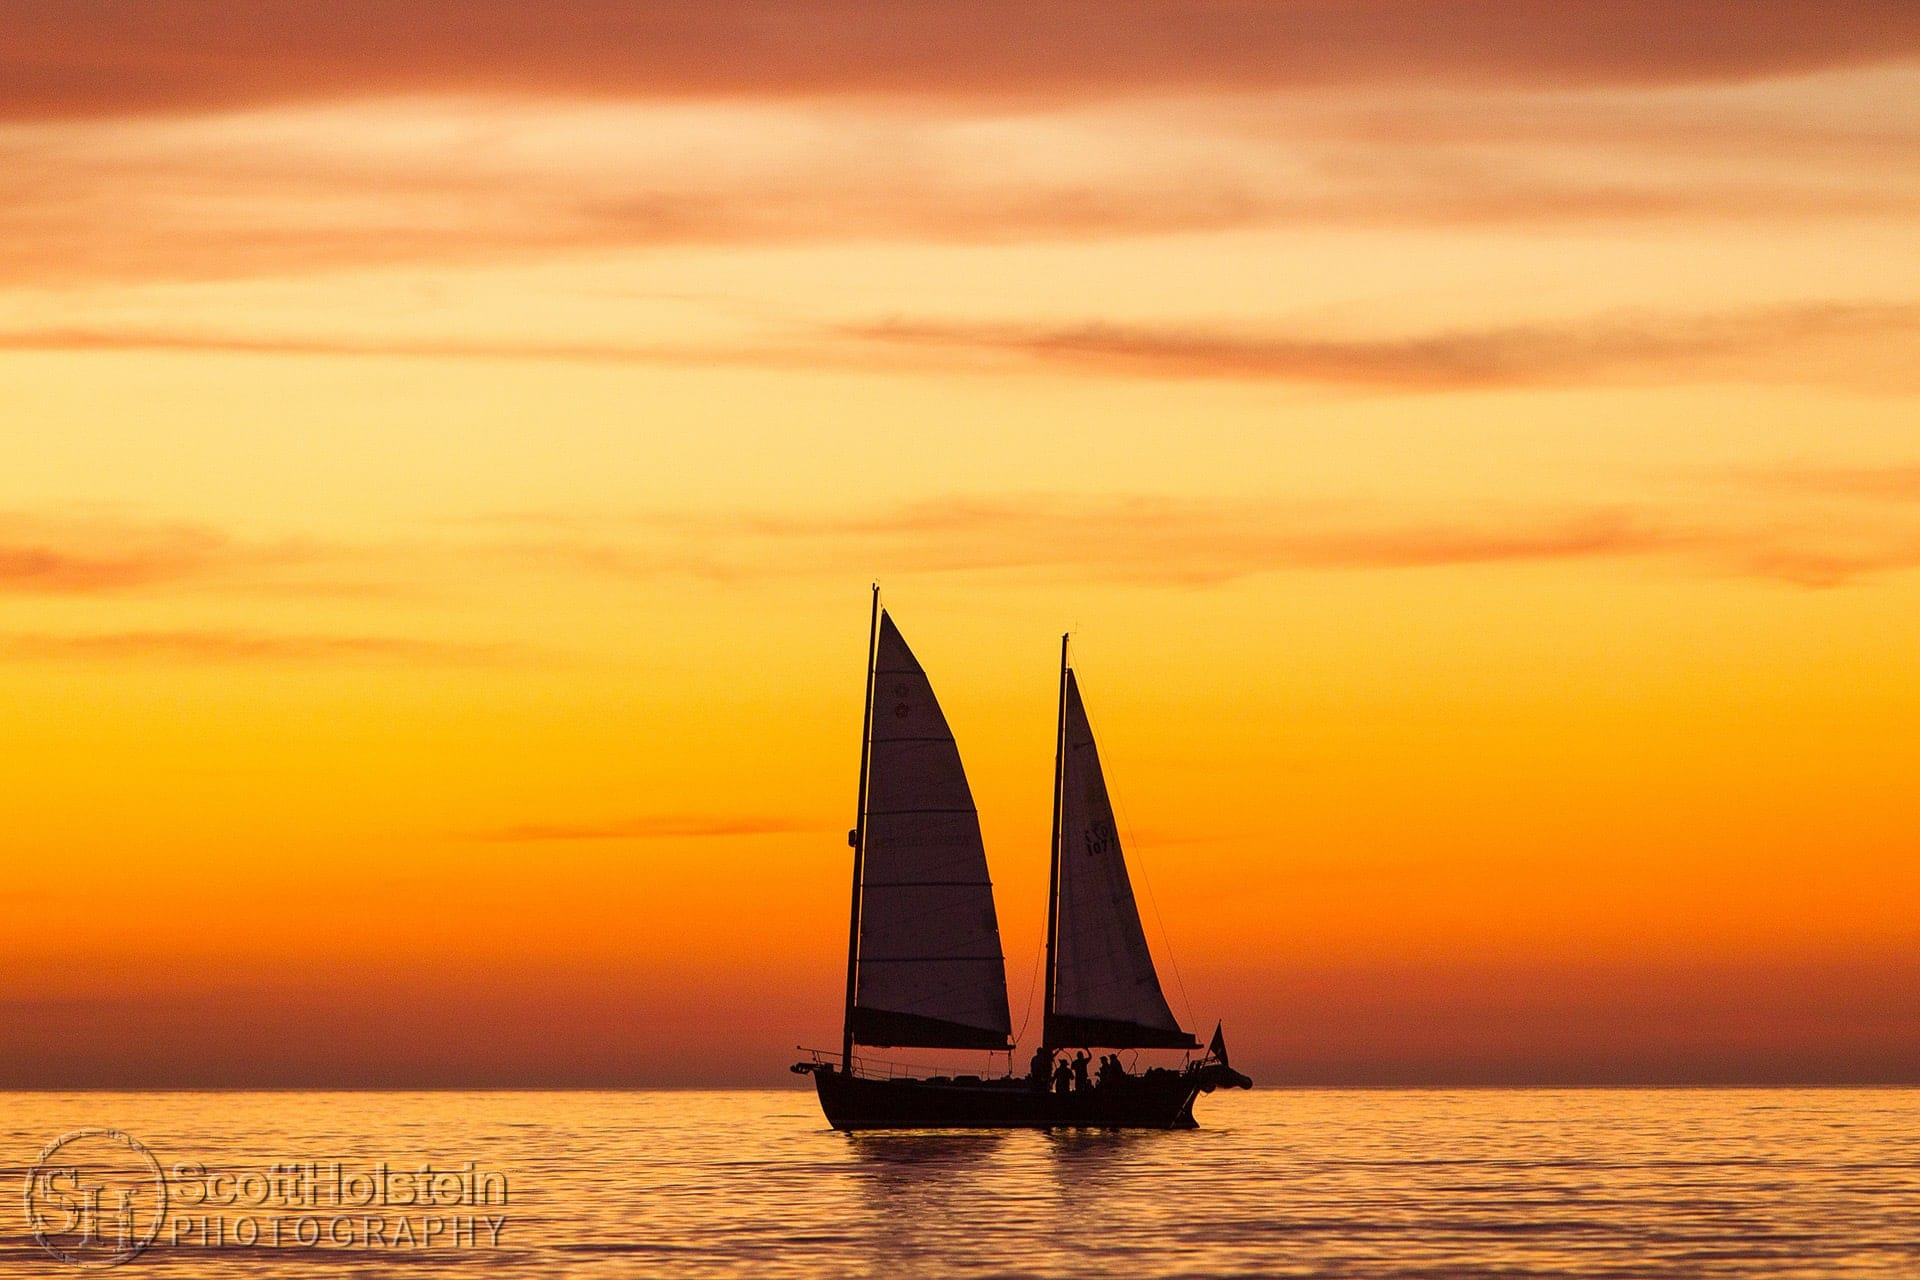 Silhouette of a sailboat during an orange sunset in Venice, Florida.